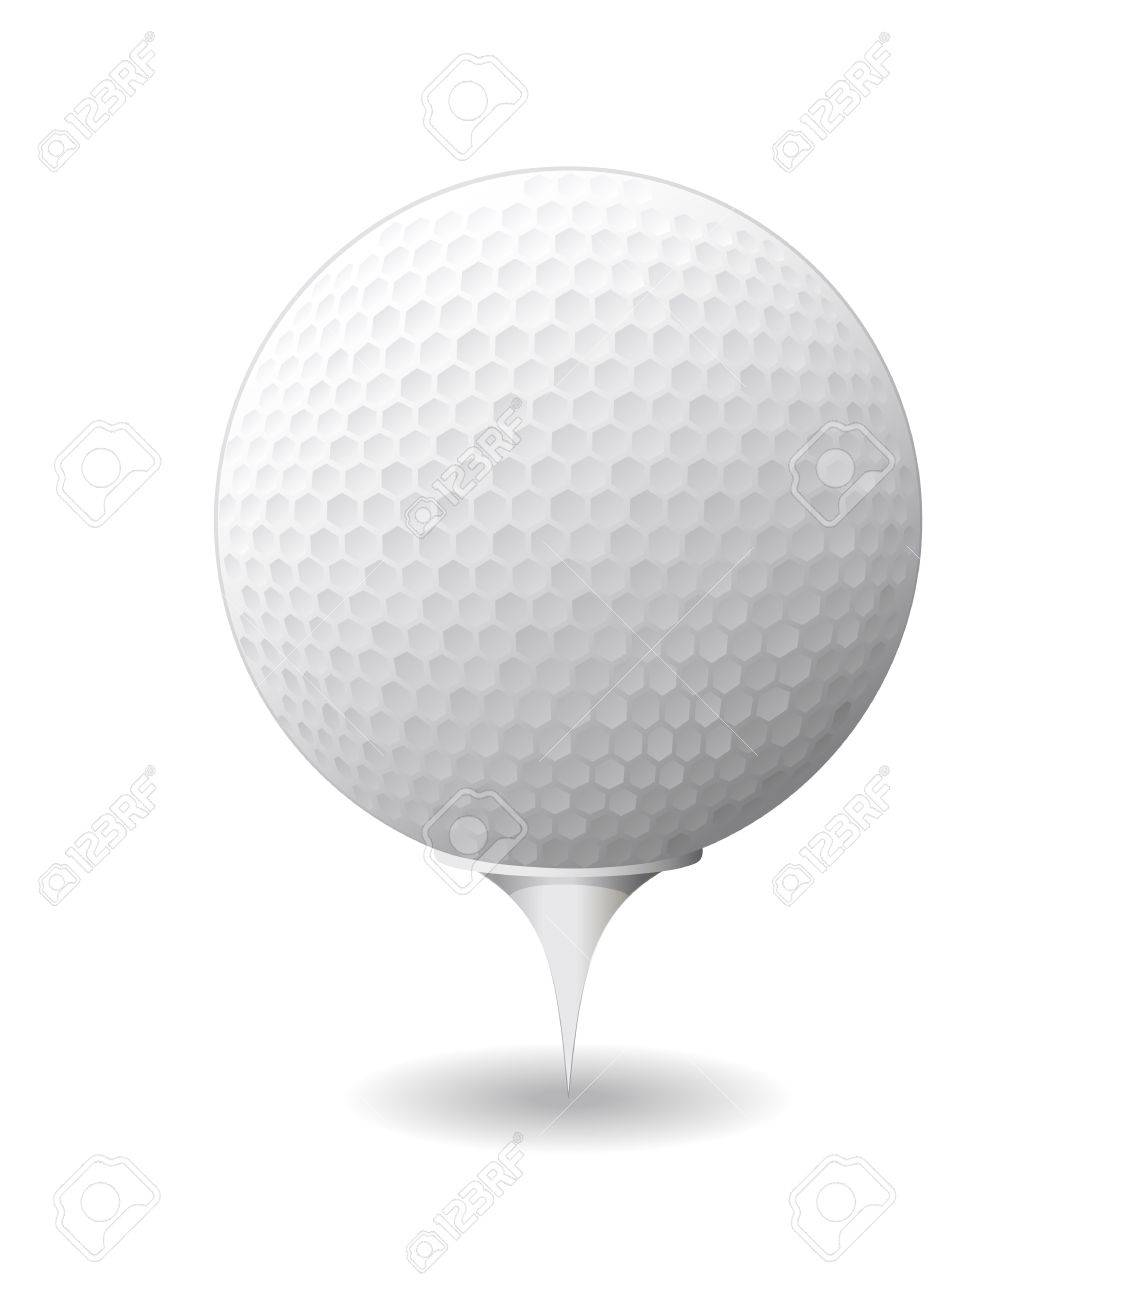 Golf ball is shown in the image - 9655798